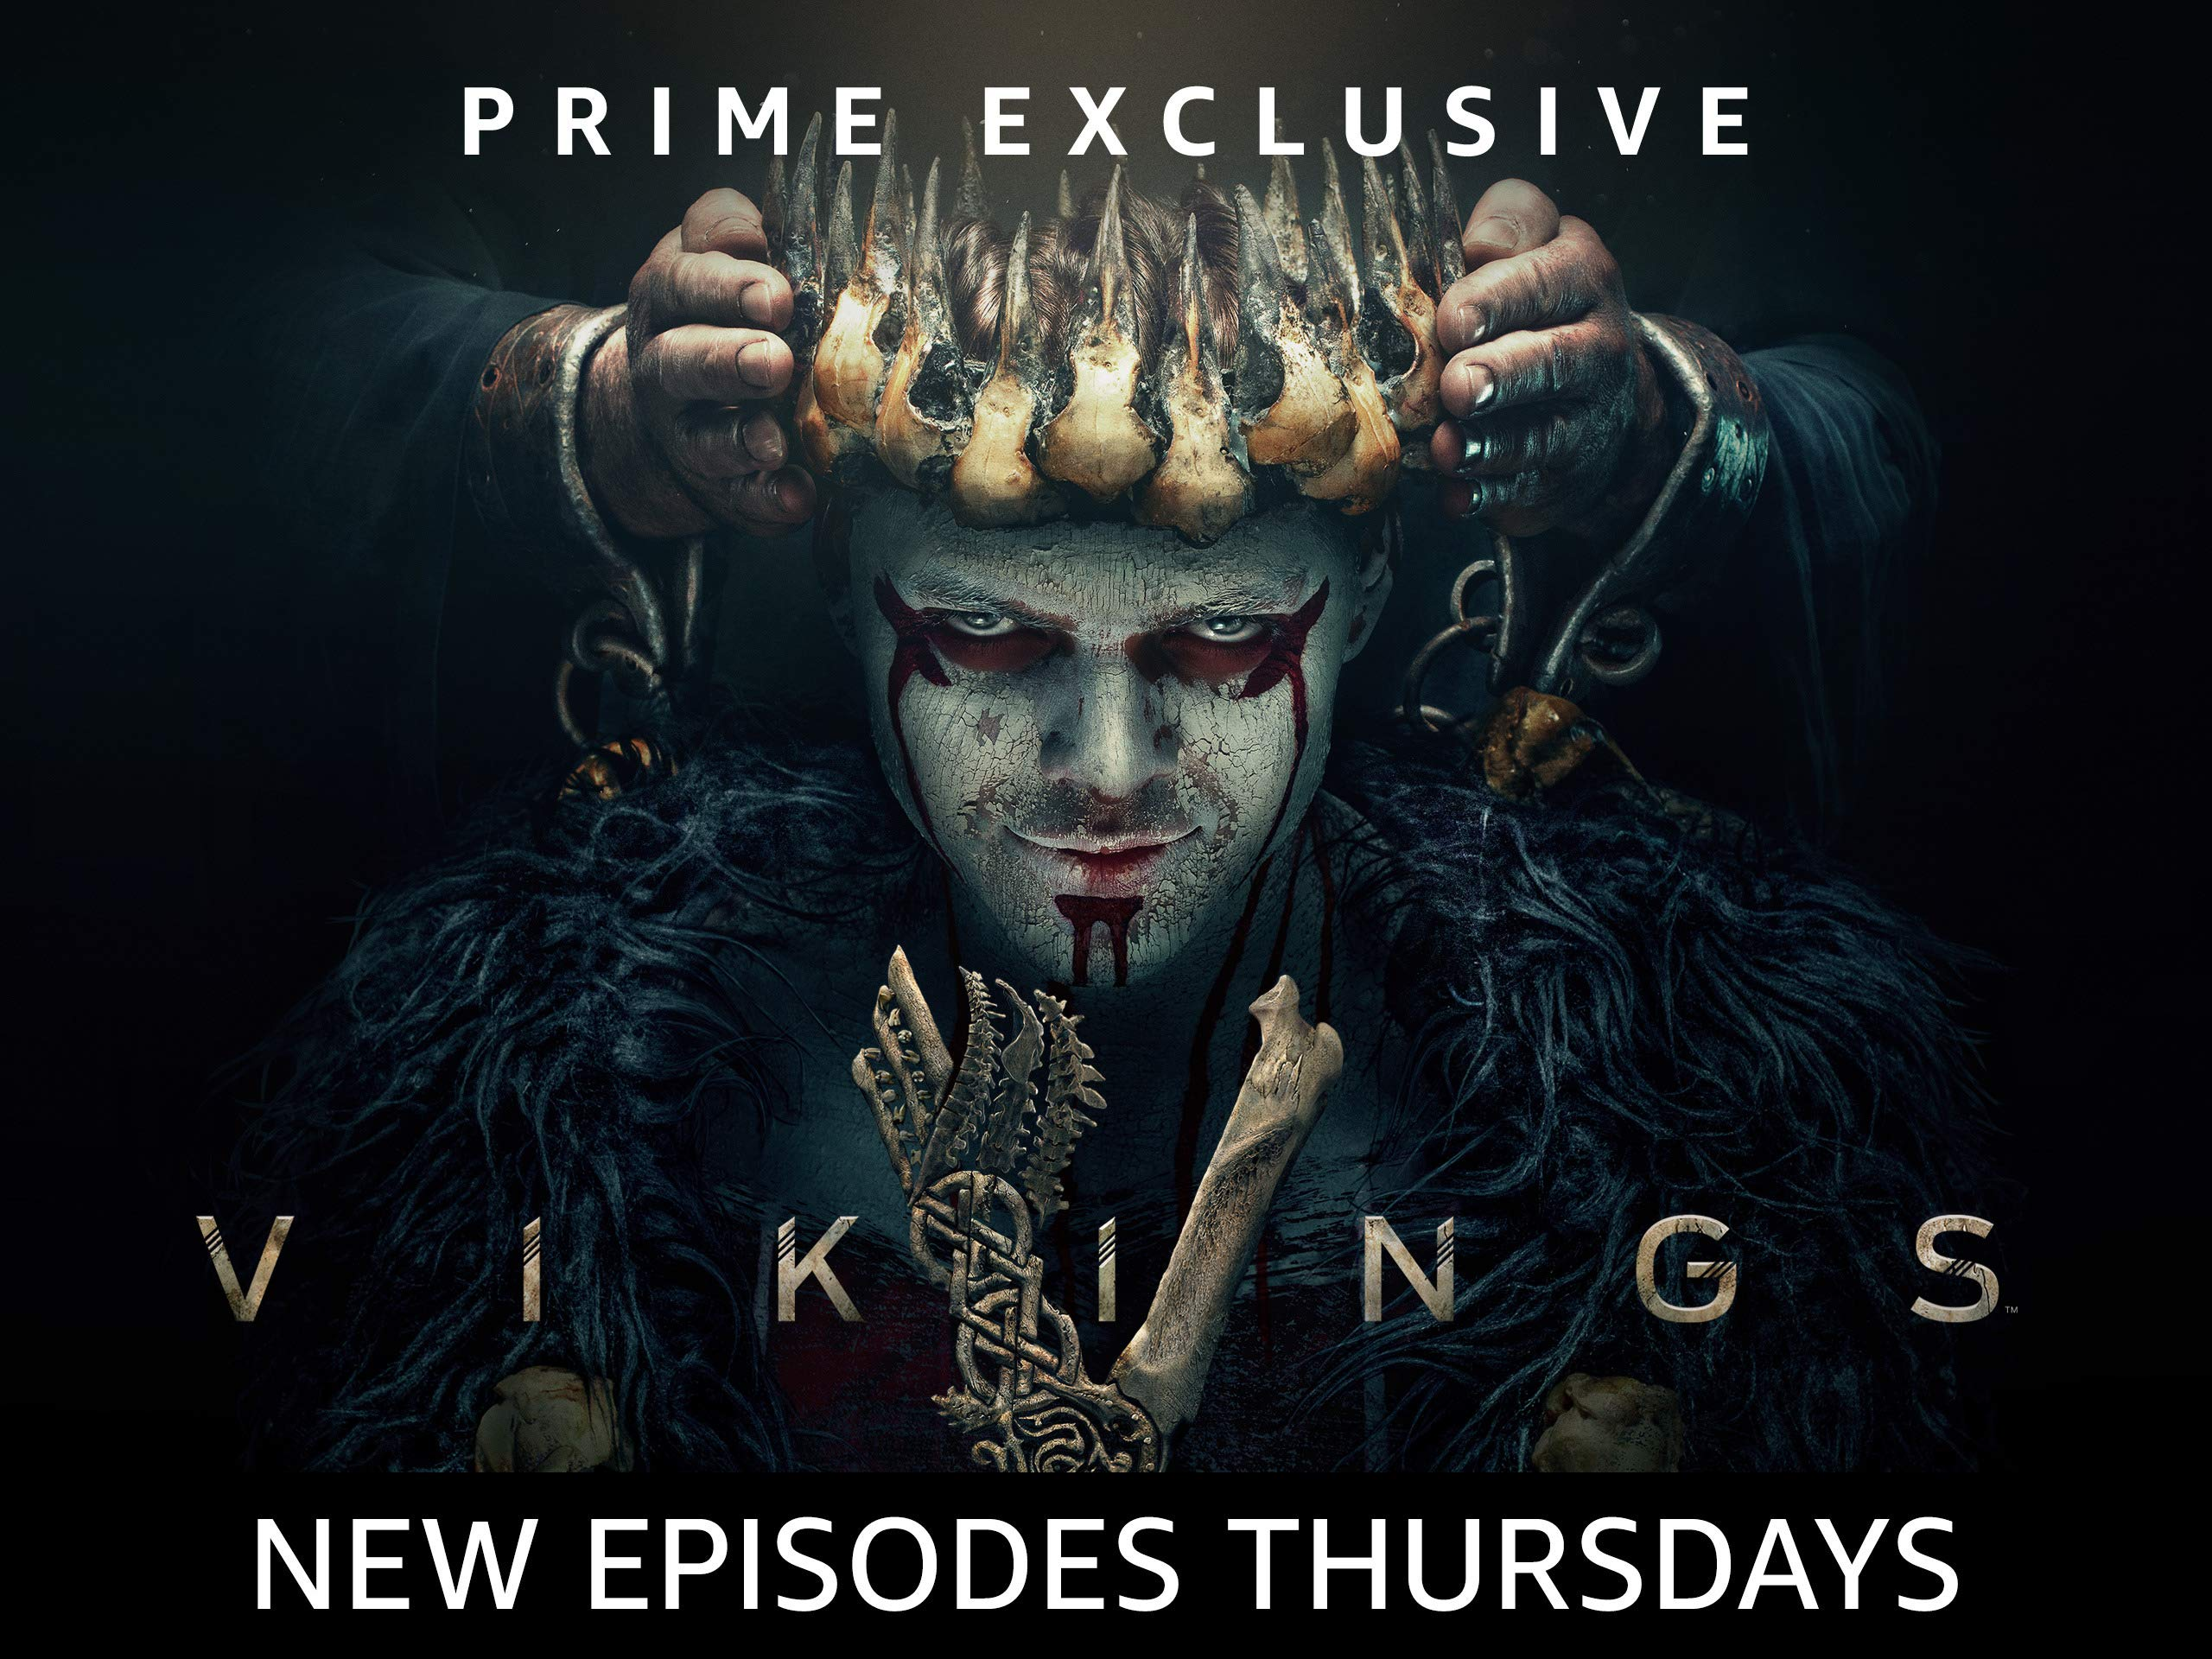 Vikings - Season 502